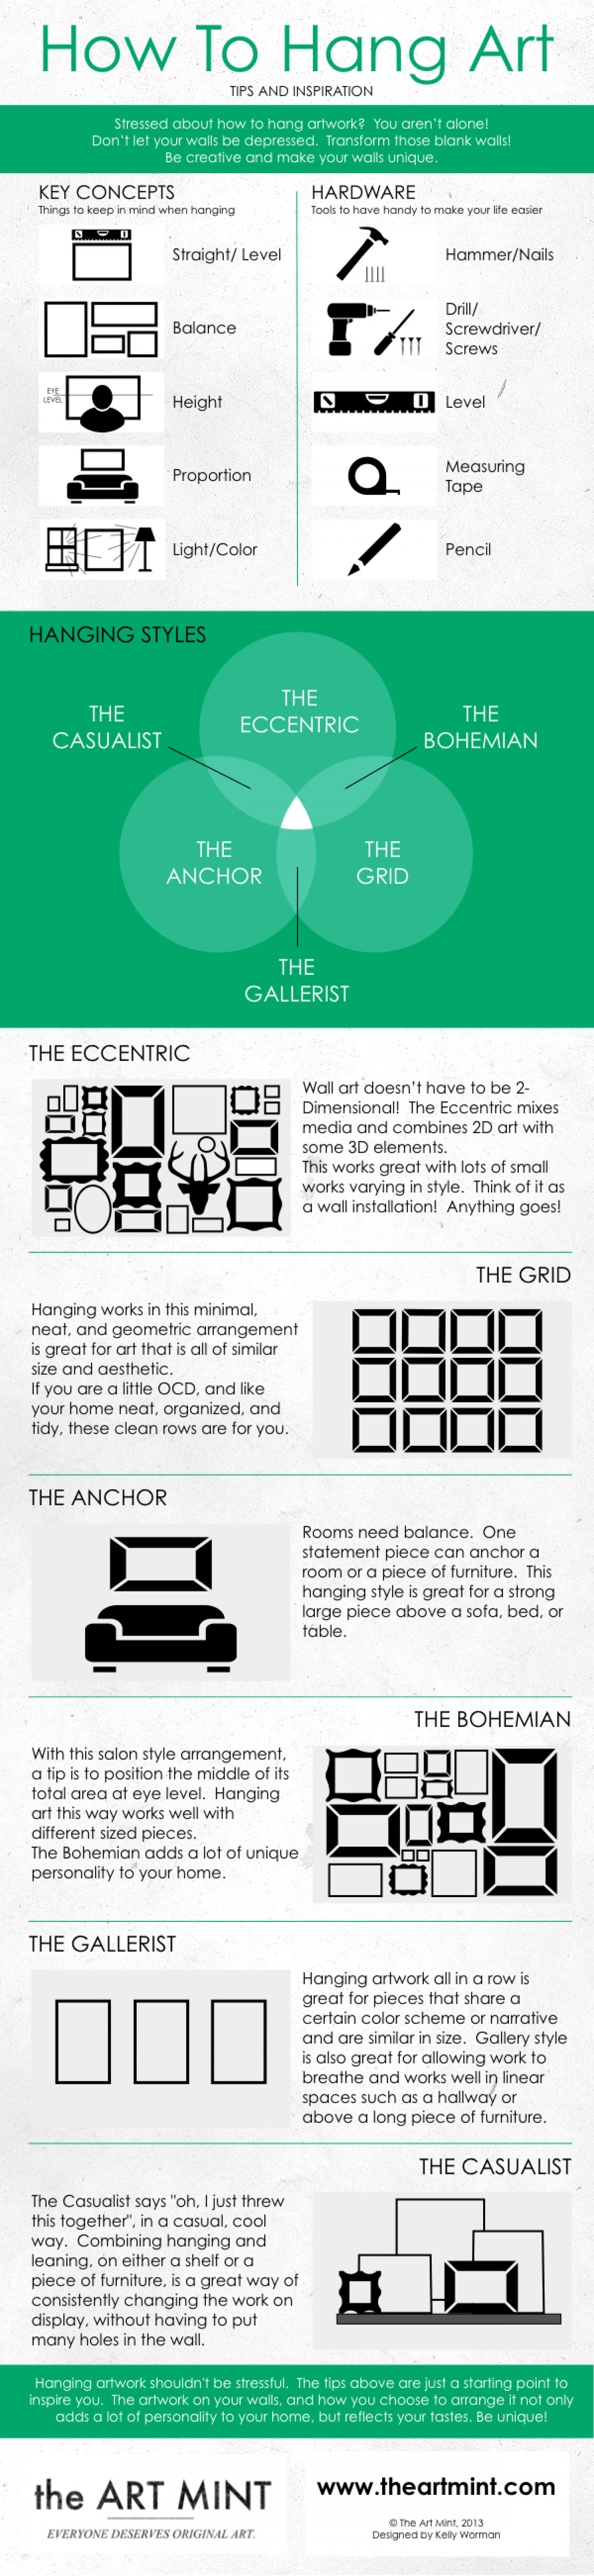 How to Hang Artwork Infographic